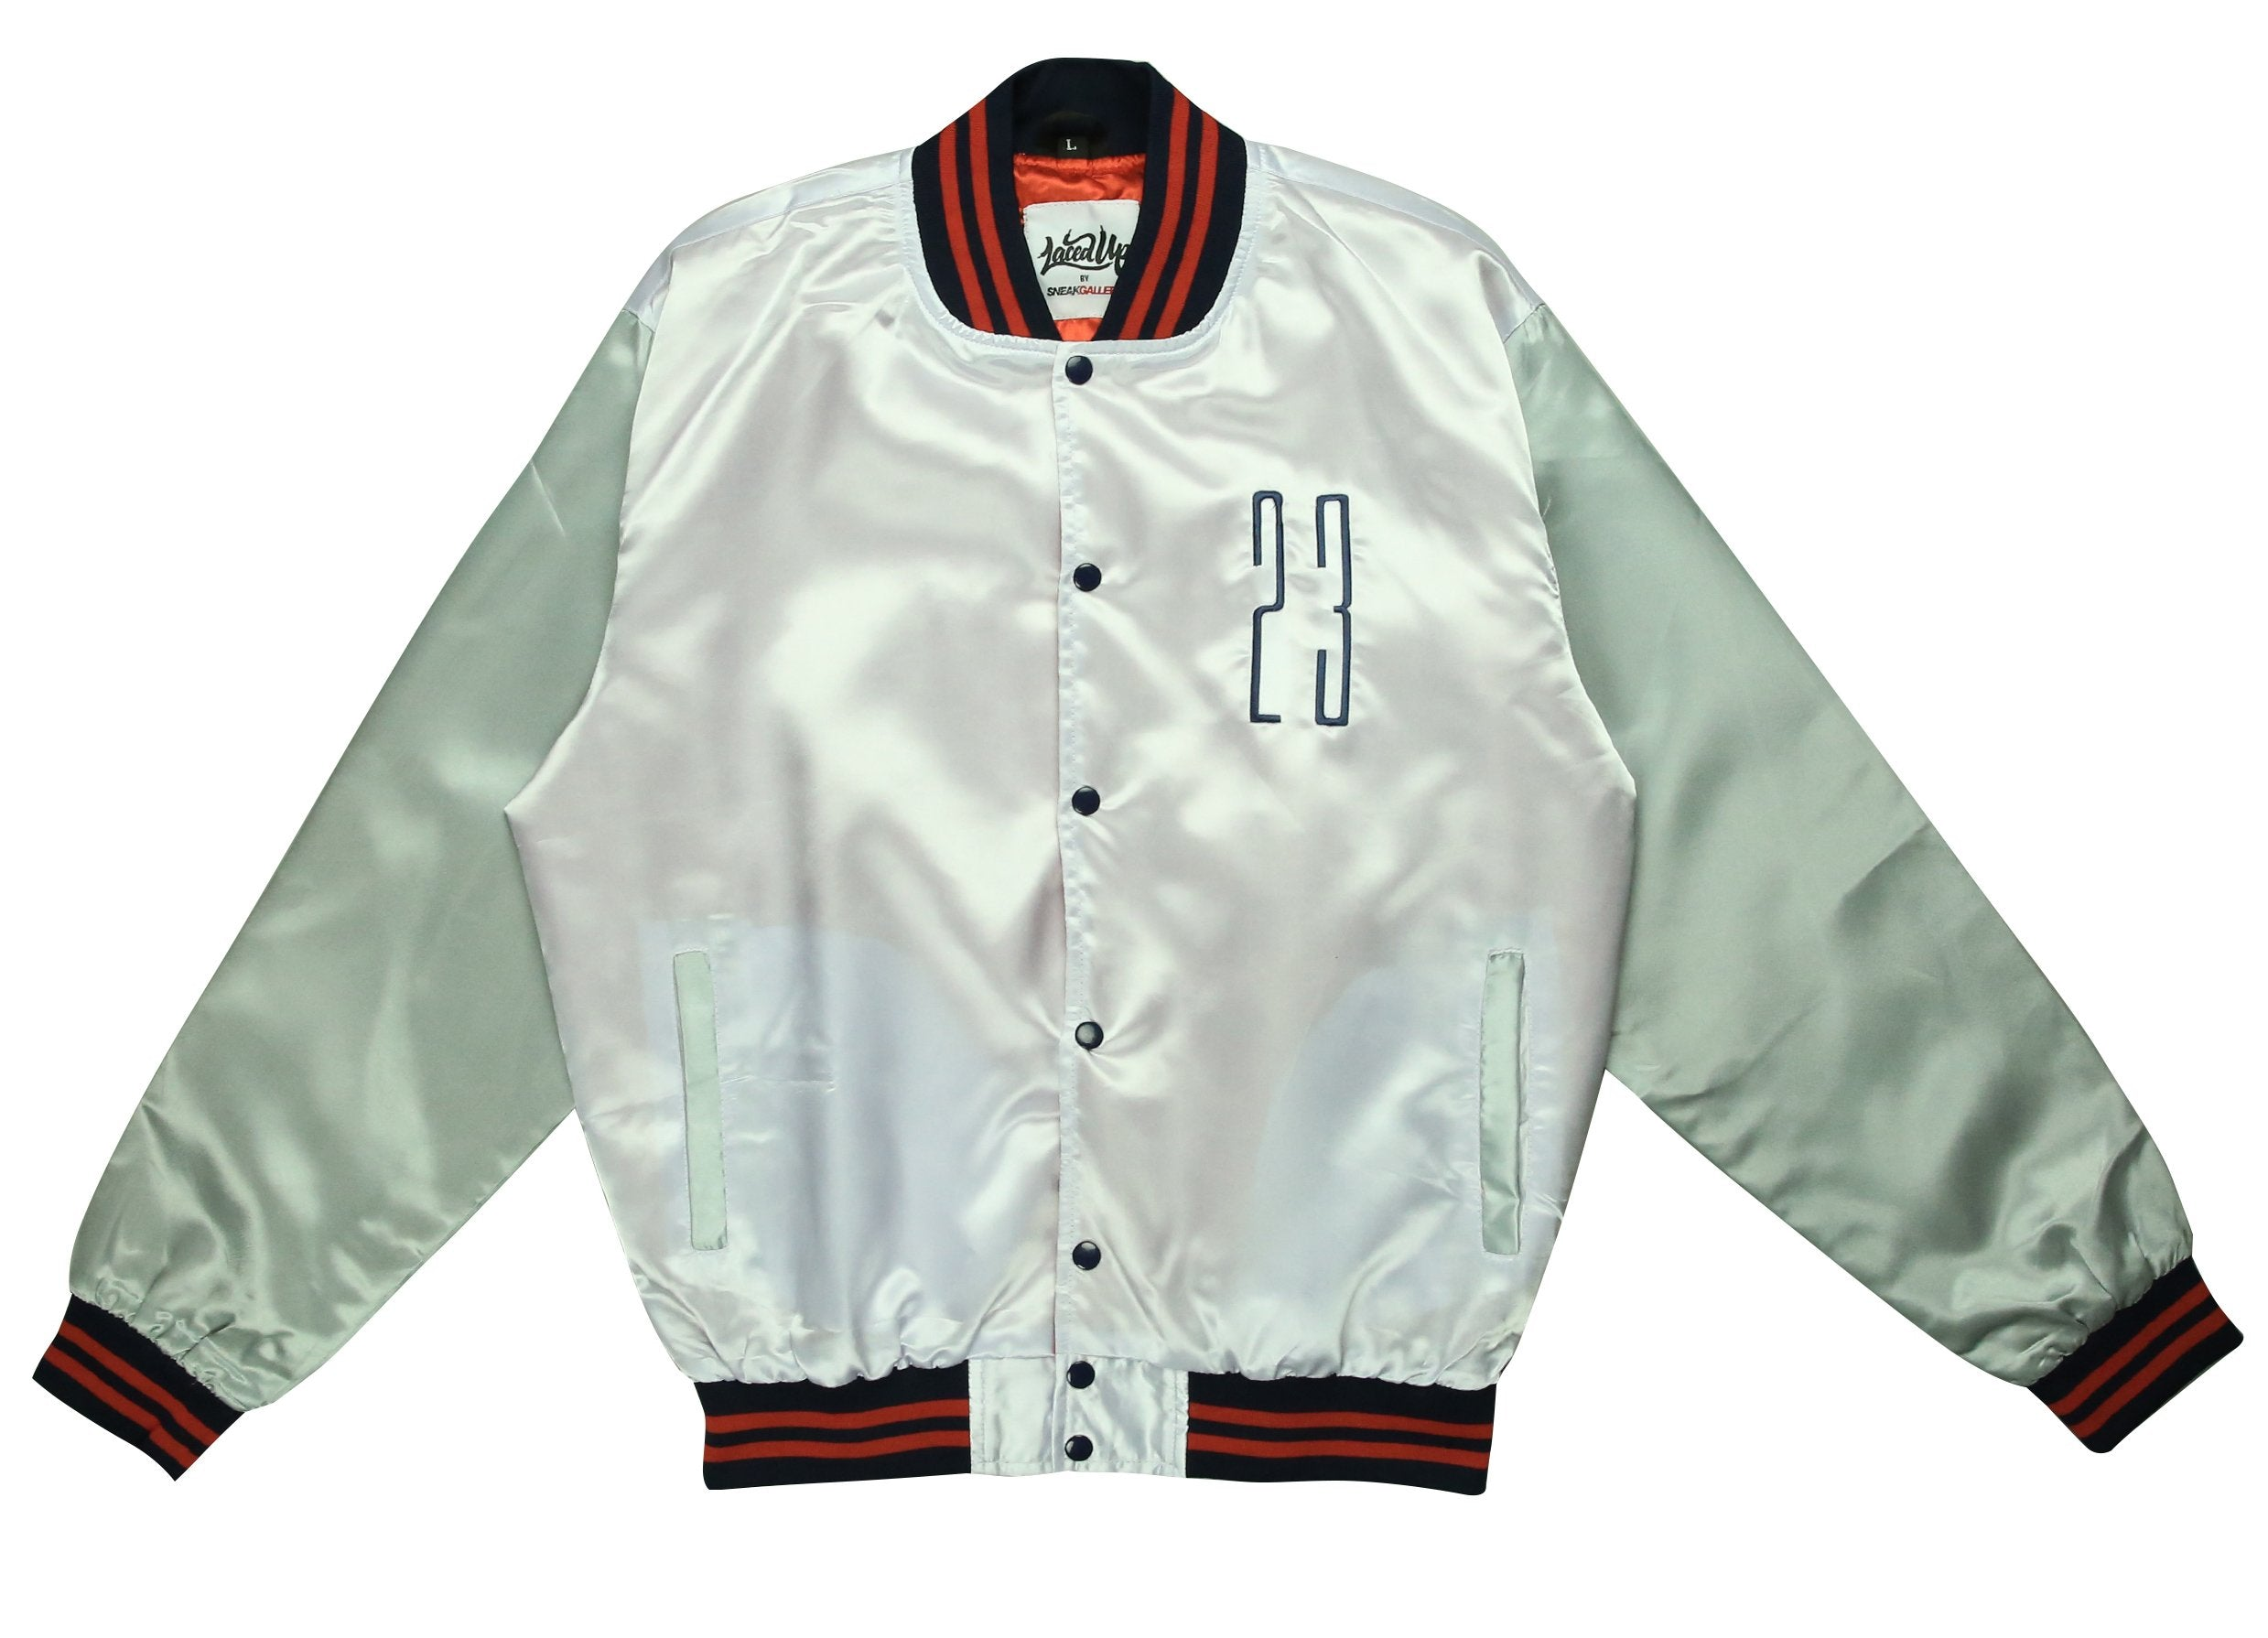 Sneak Gallery 1991 TINKER INSPIRED SATIN BOMBER JACKET